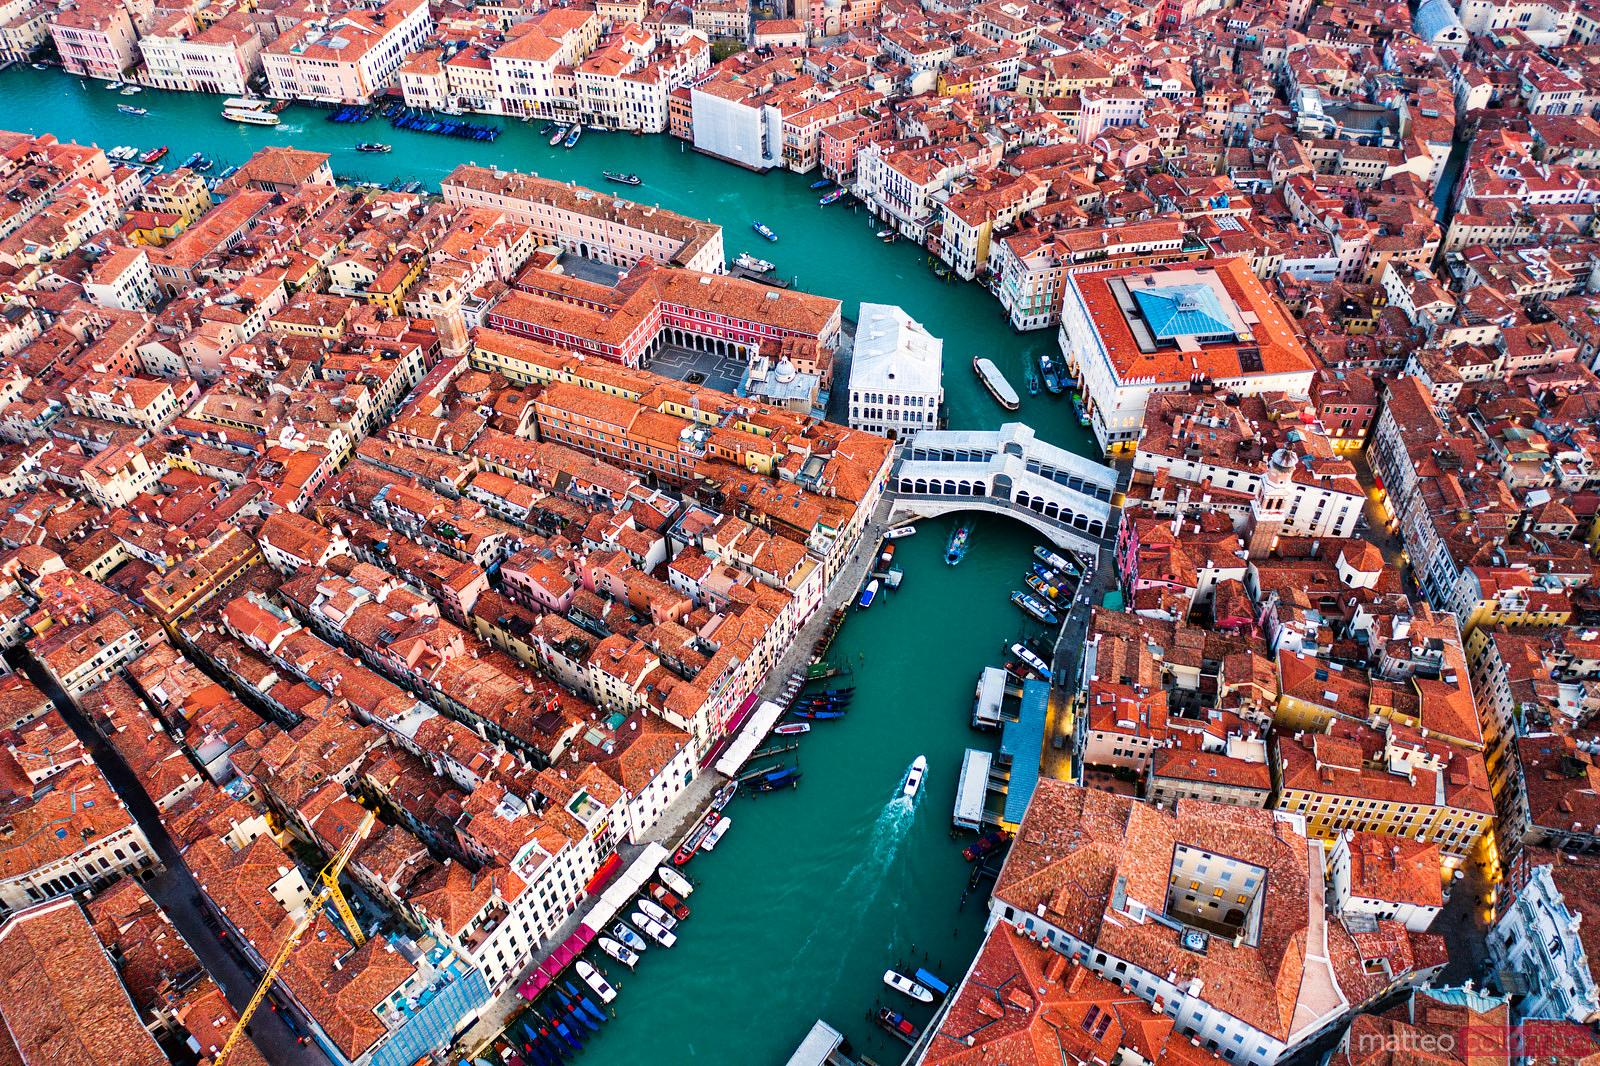 Aerial view of Grand Canal and Rialto bridge, Venice, Italy